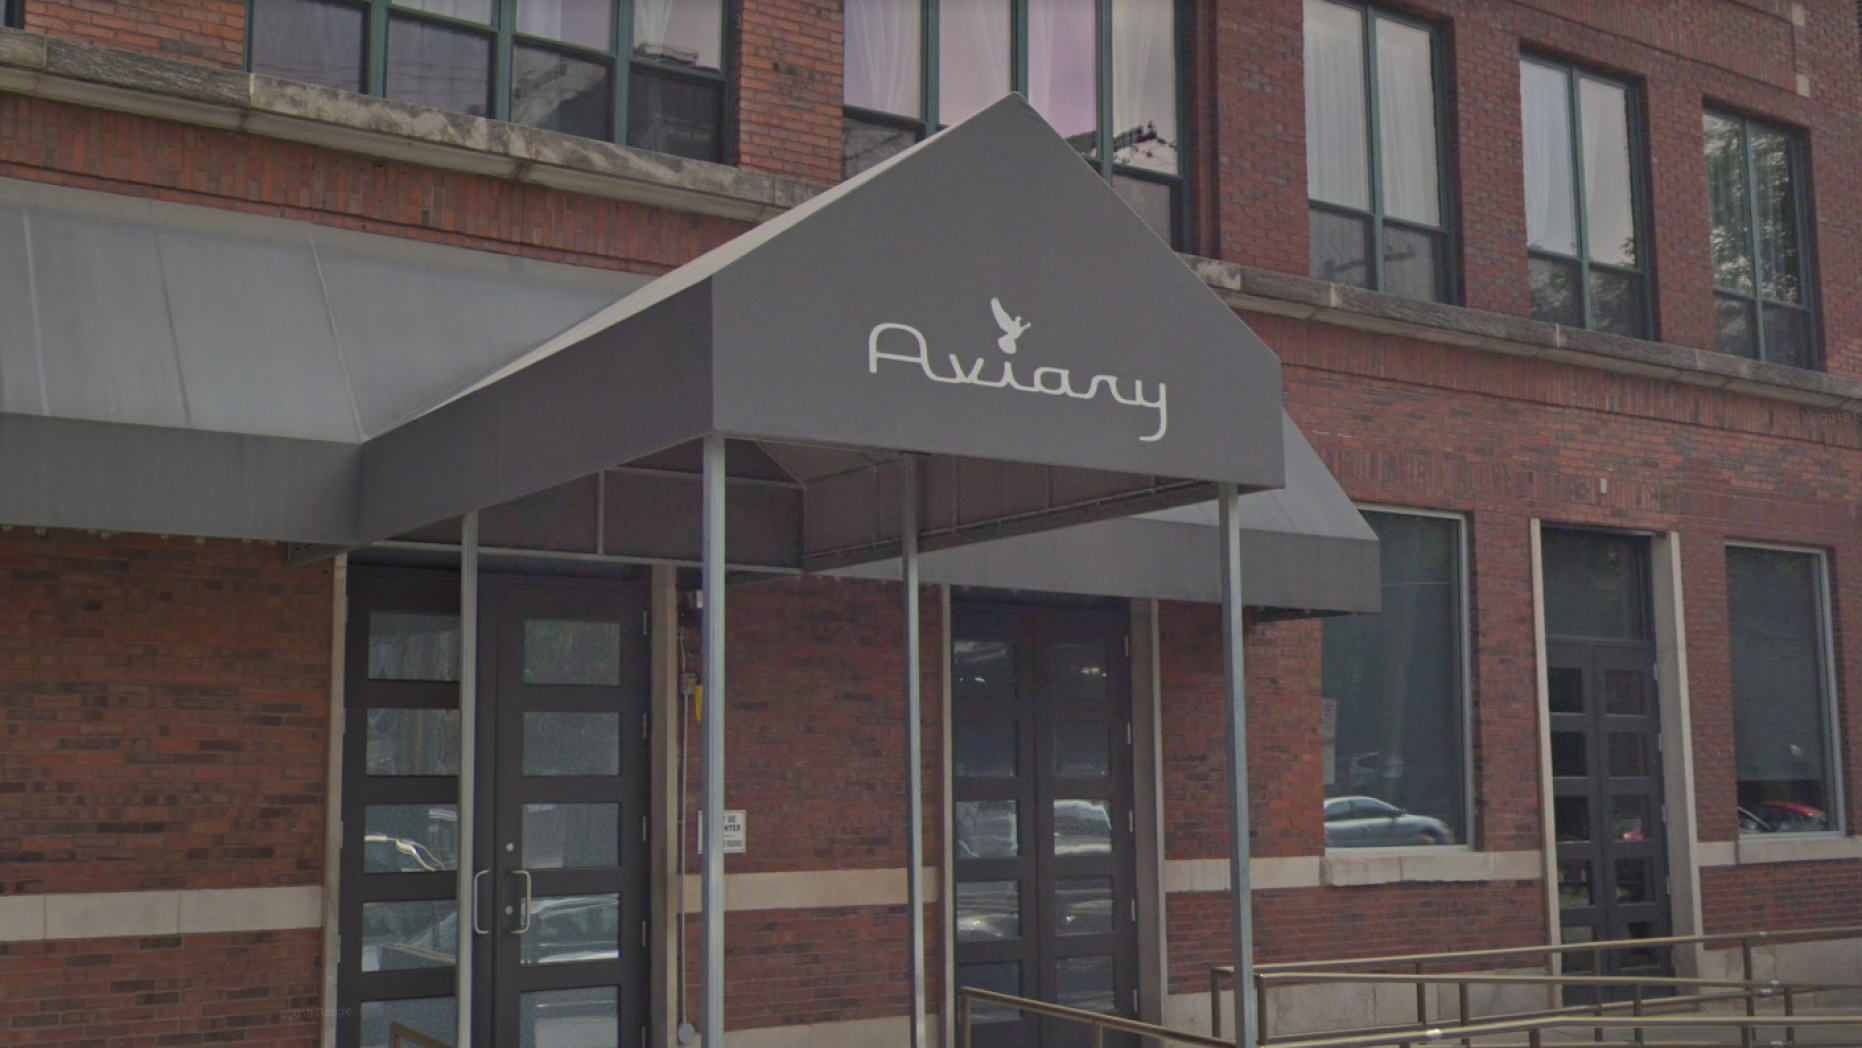 The restaurant group  that owns Aviary